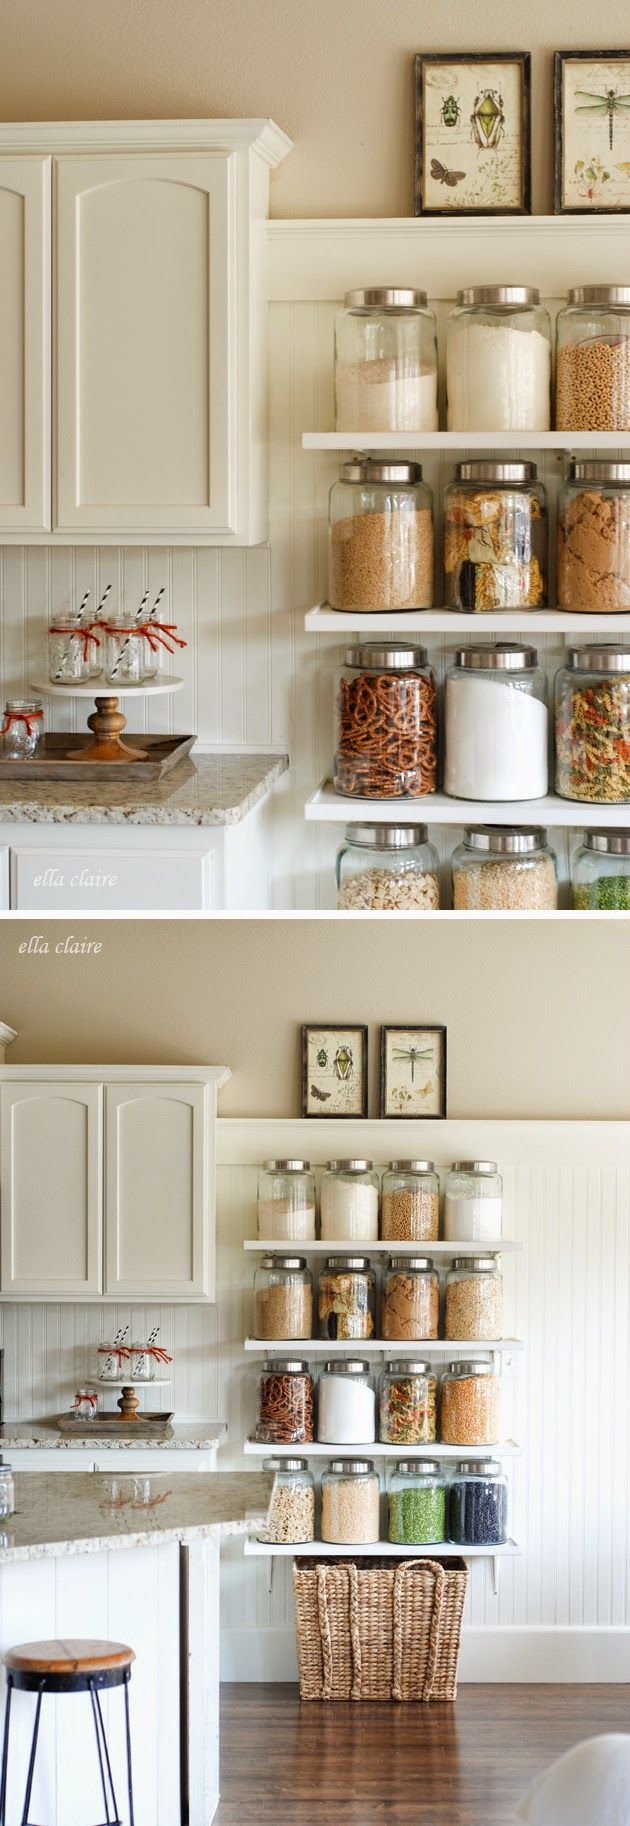 Diy country store kitchen shelves glass canisters for Add drawers to kitchen cabinets